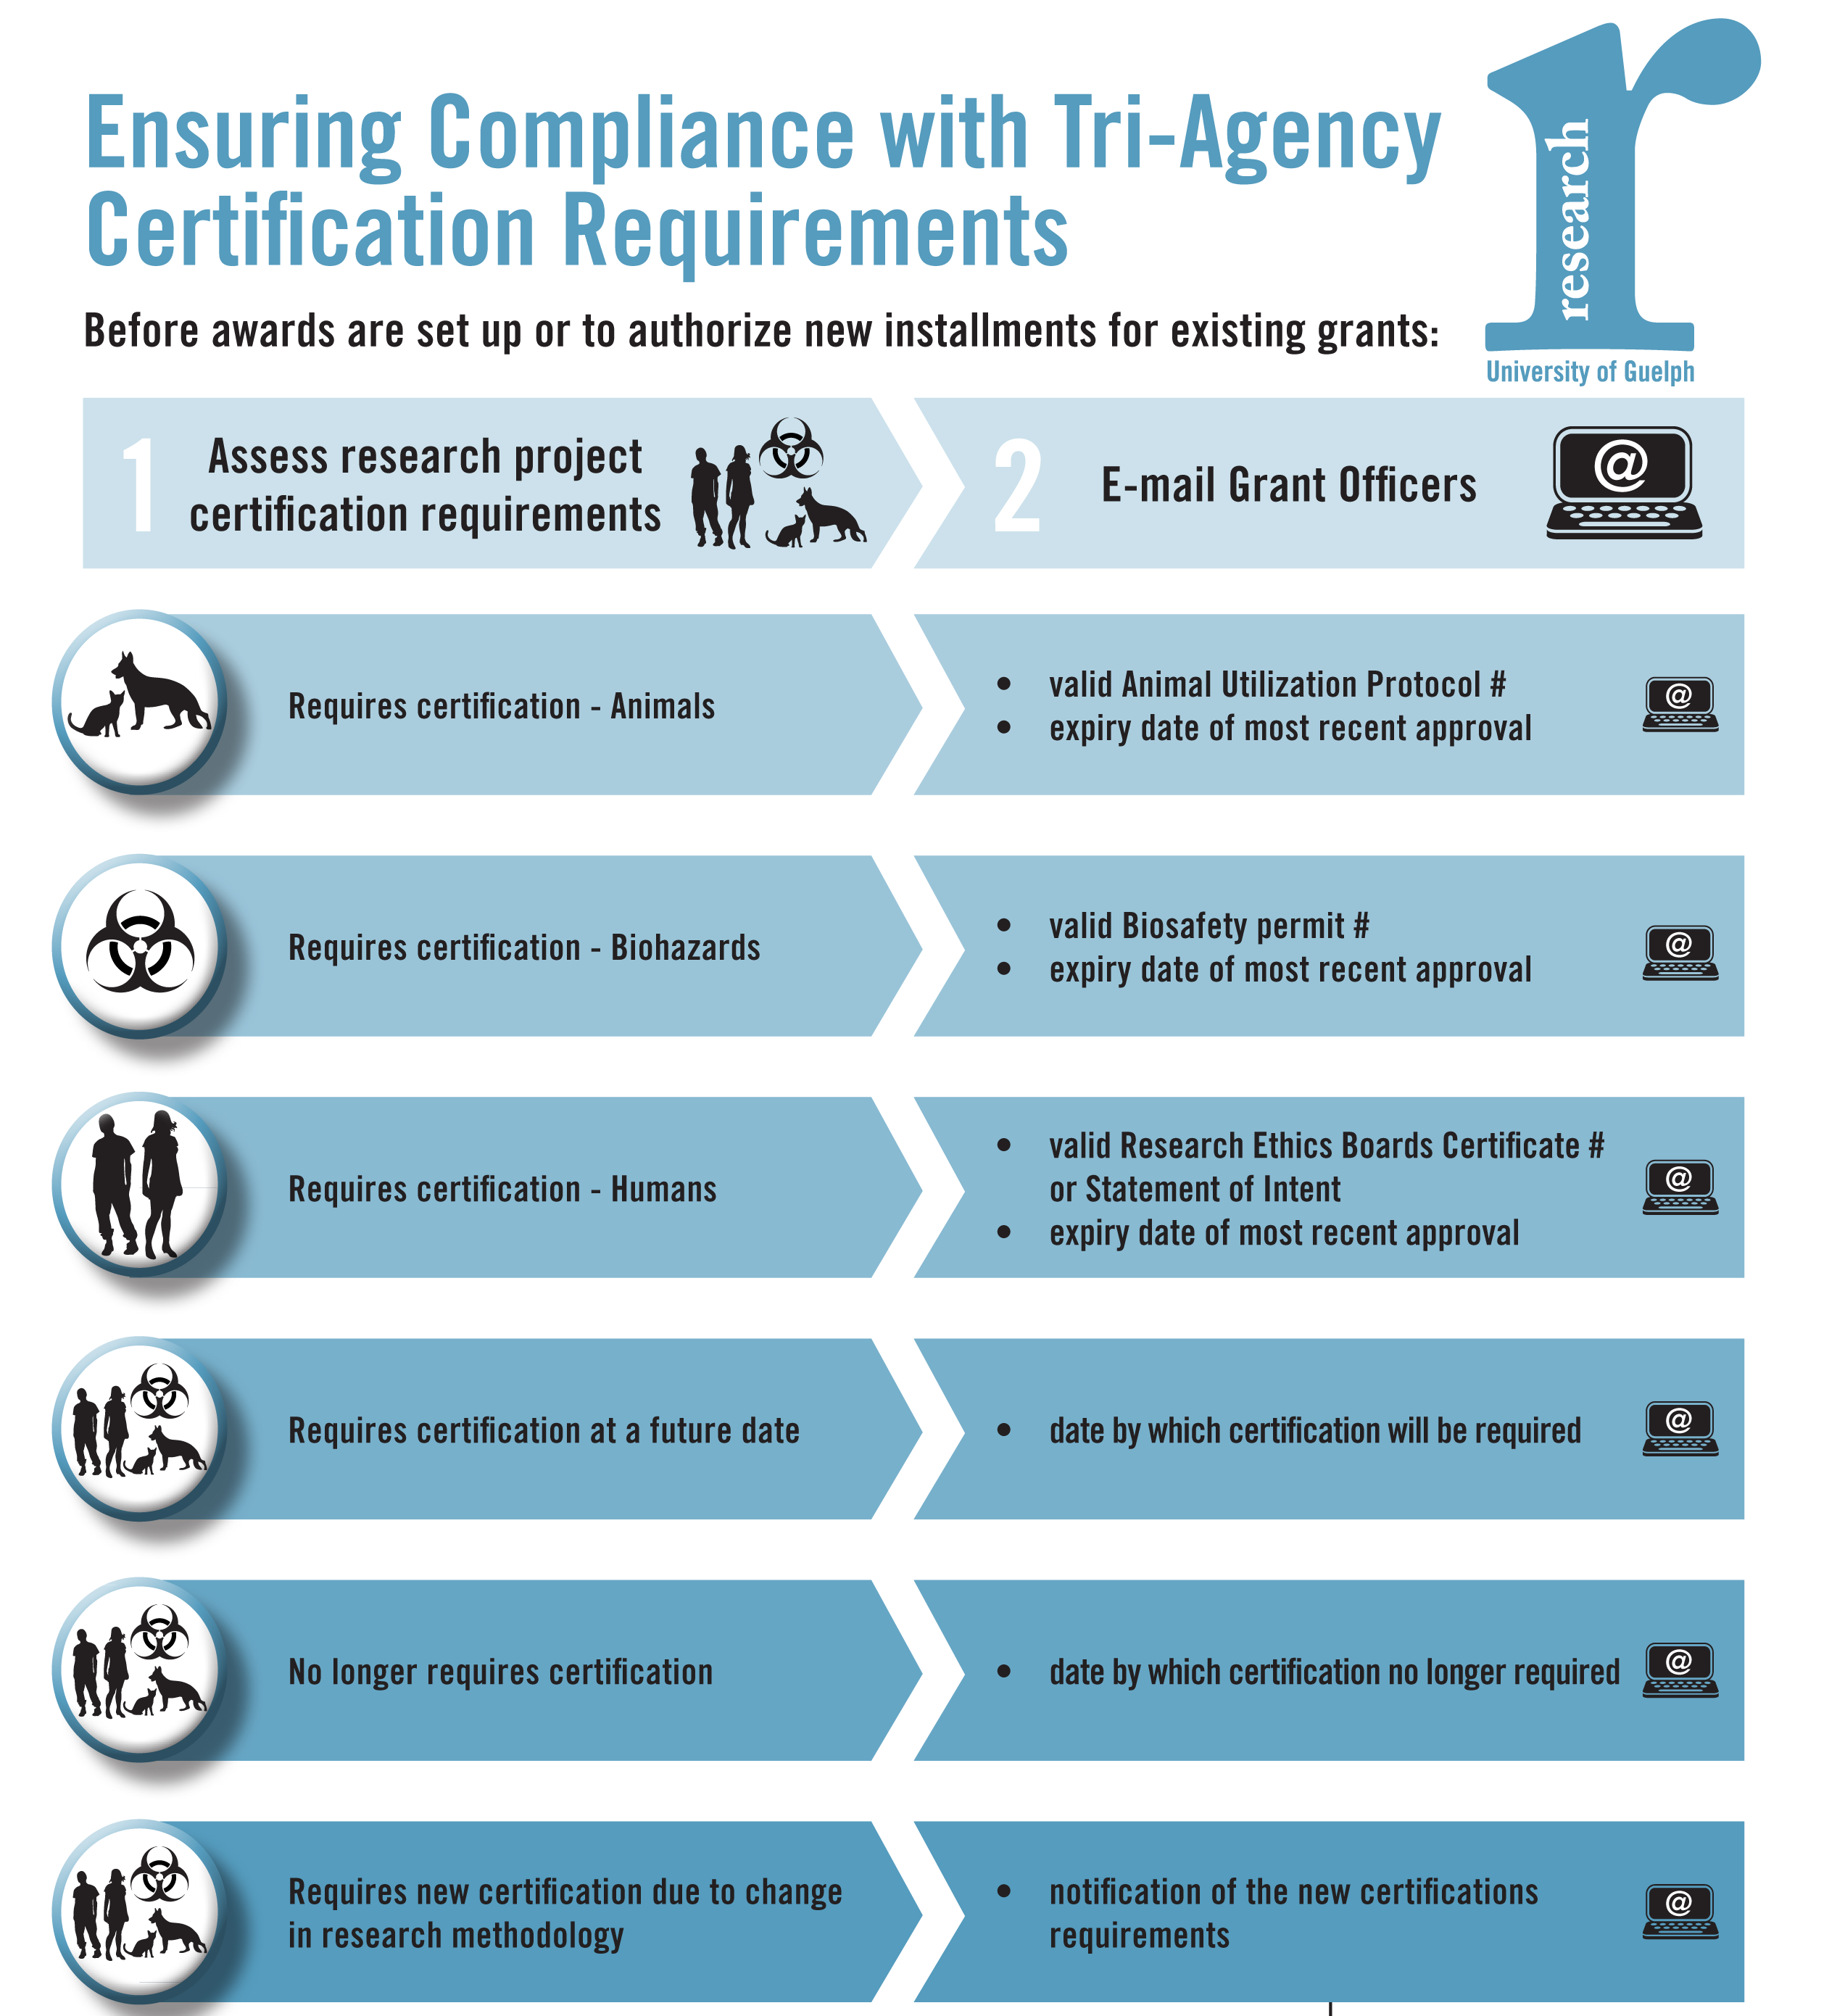 Ensuring compliance with Tri-Agency certification requirements flowchart